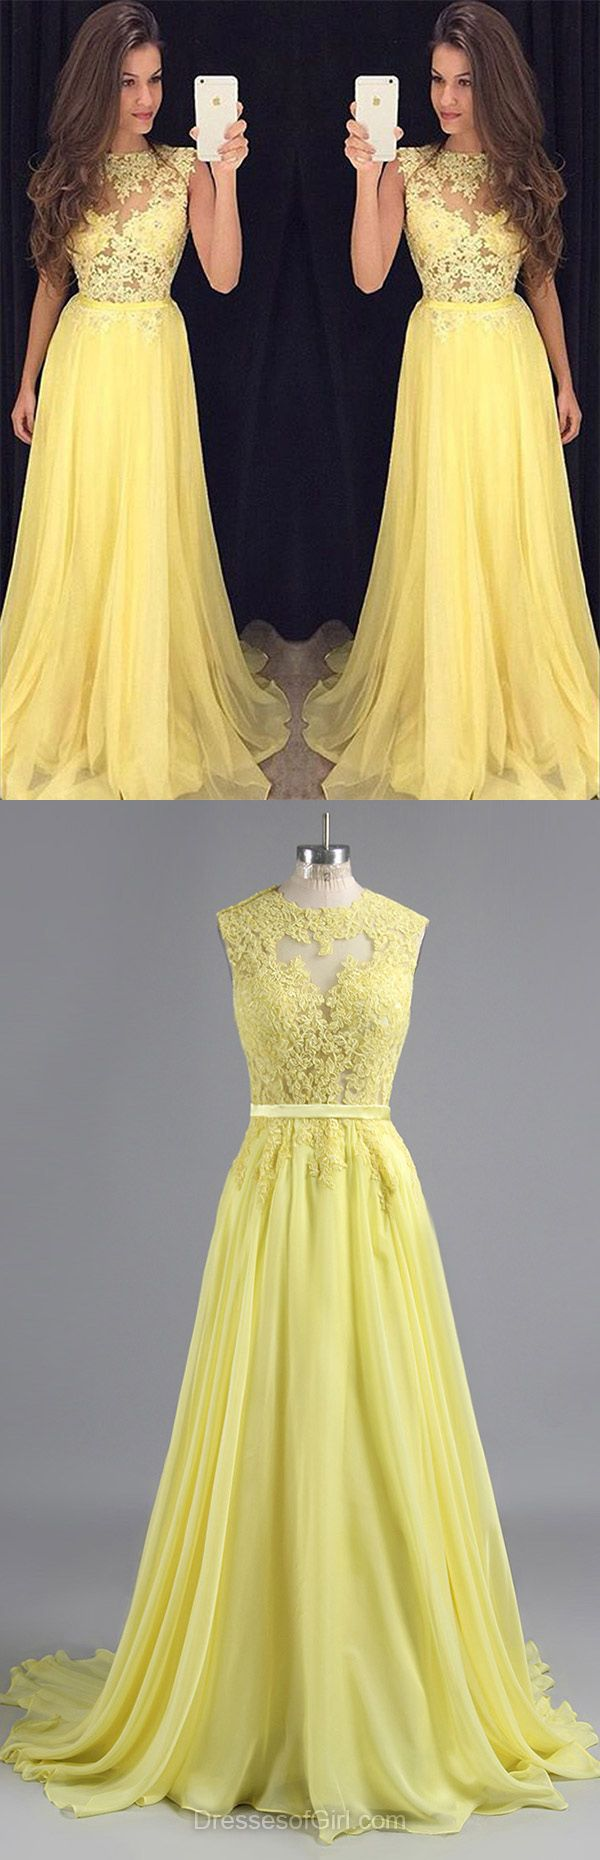 Graceful Scoop Neck Chiffon Appliques Lace Daffodil Long Prom Dresses